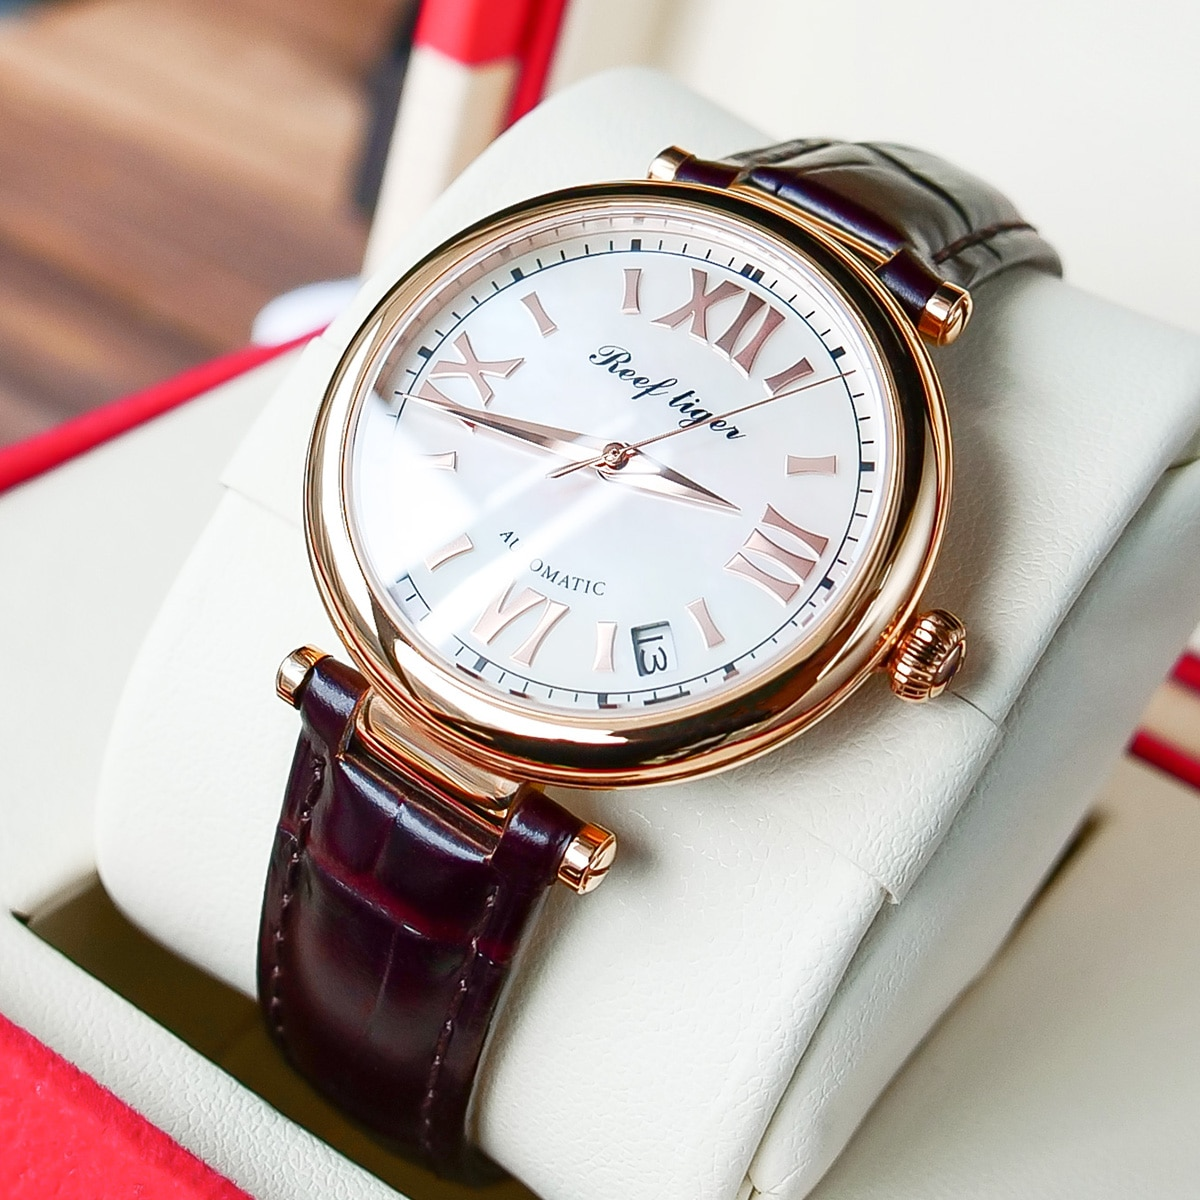 Reef Tiger / RT 2021 Top Brand Luxury Gold Watch Automatic Day Date Watch Waterproof Genuine Leather Watch RGA1595 enlarge